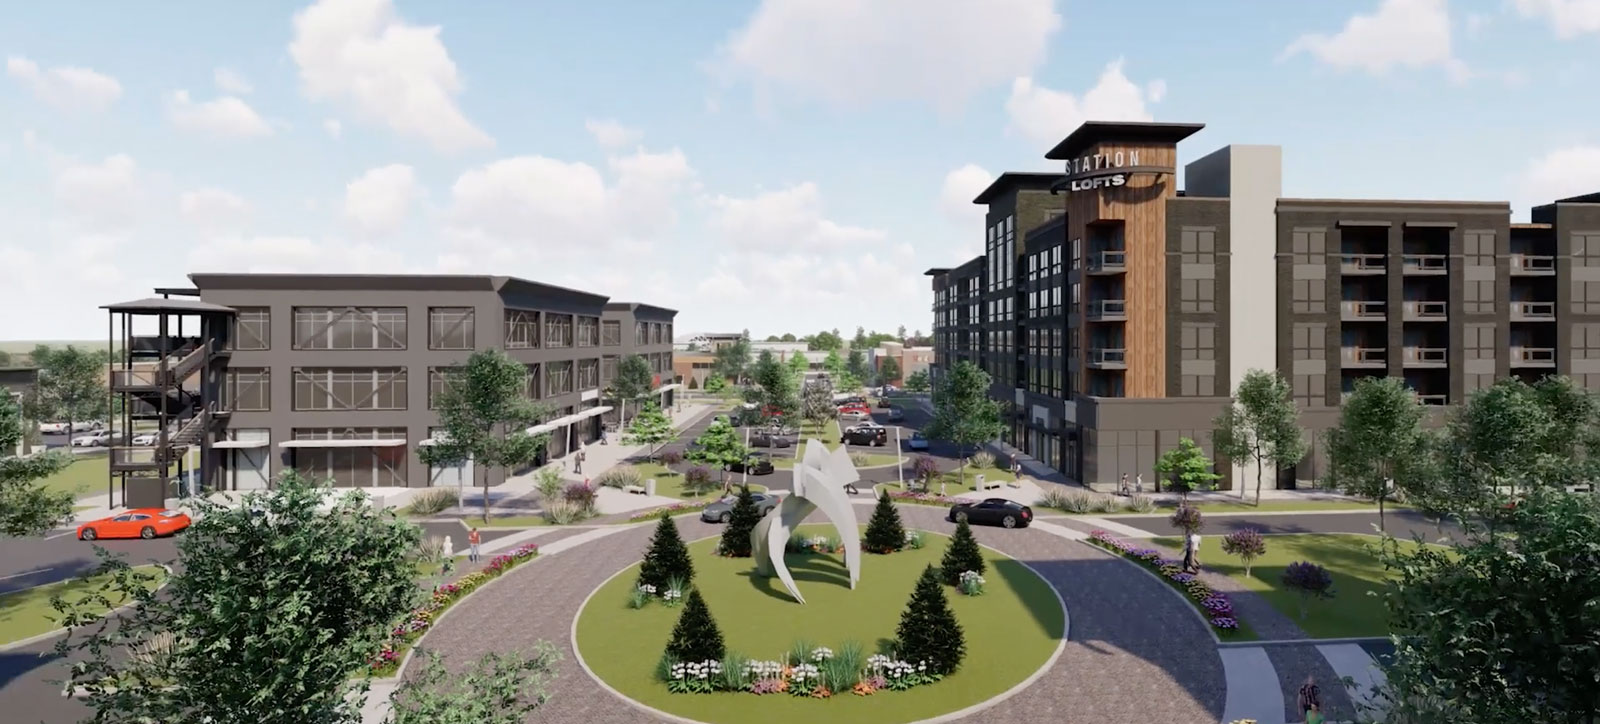 Exchange at Gwinnett Rendering | Marketing by Clementine Creative Agency